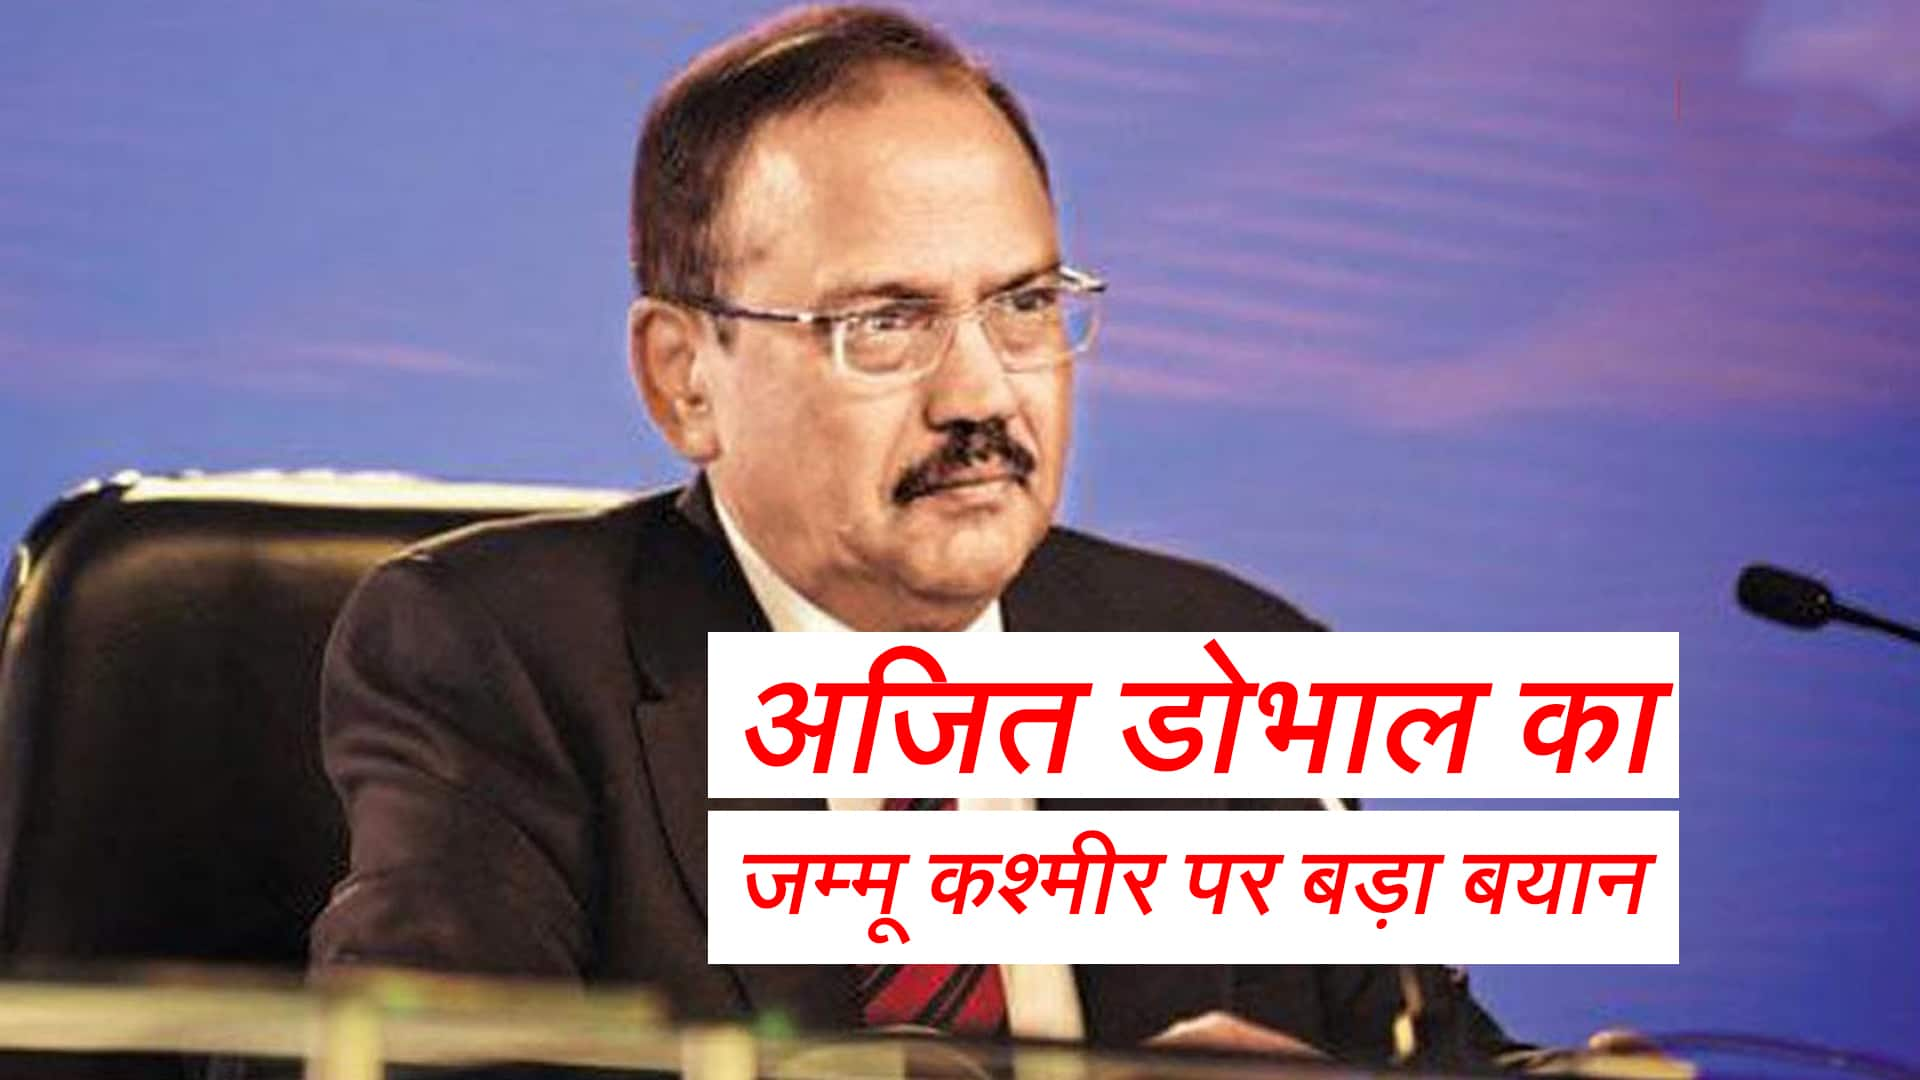 Having a separate constitution for J&K was an aberration: Ajit Doval